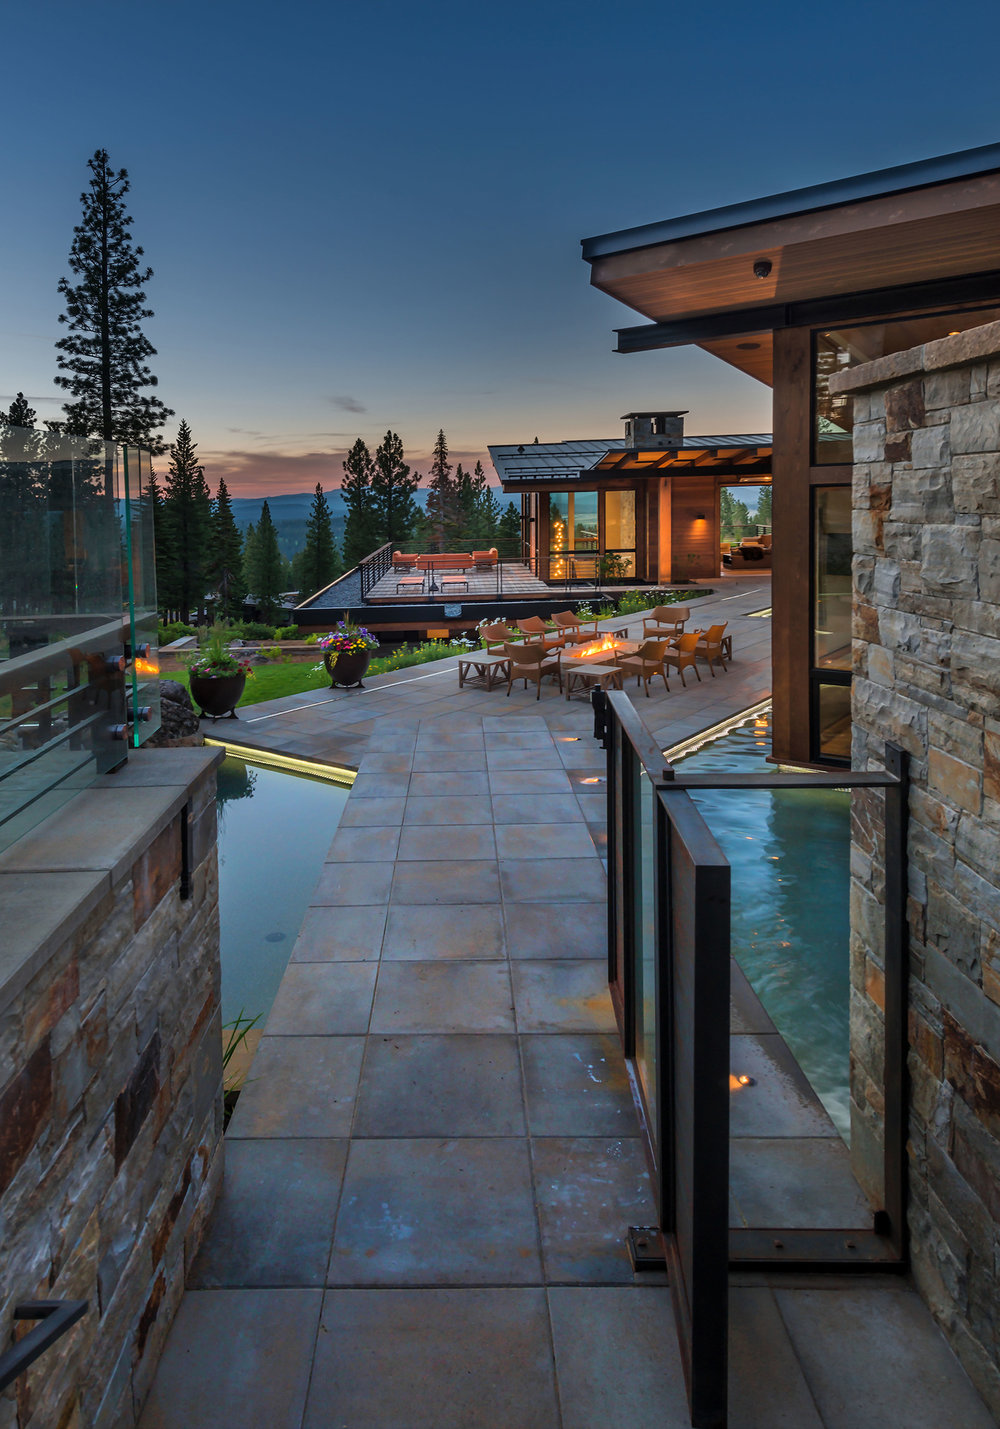 Lot 595_Exterior_Water Features_Glass Gate_Firepit_Landscaping_View.jpg